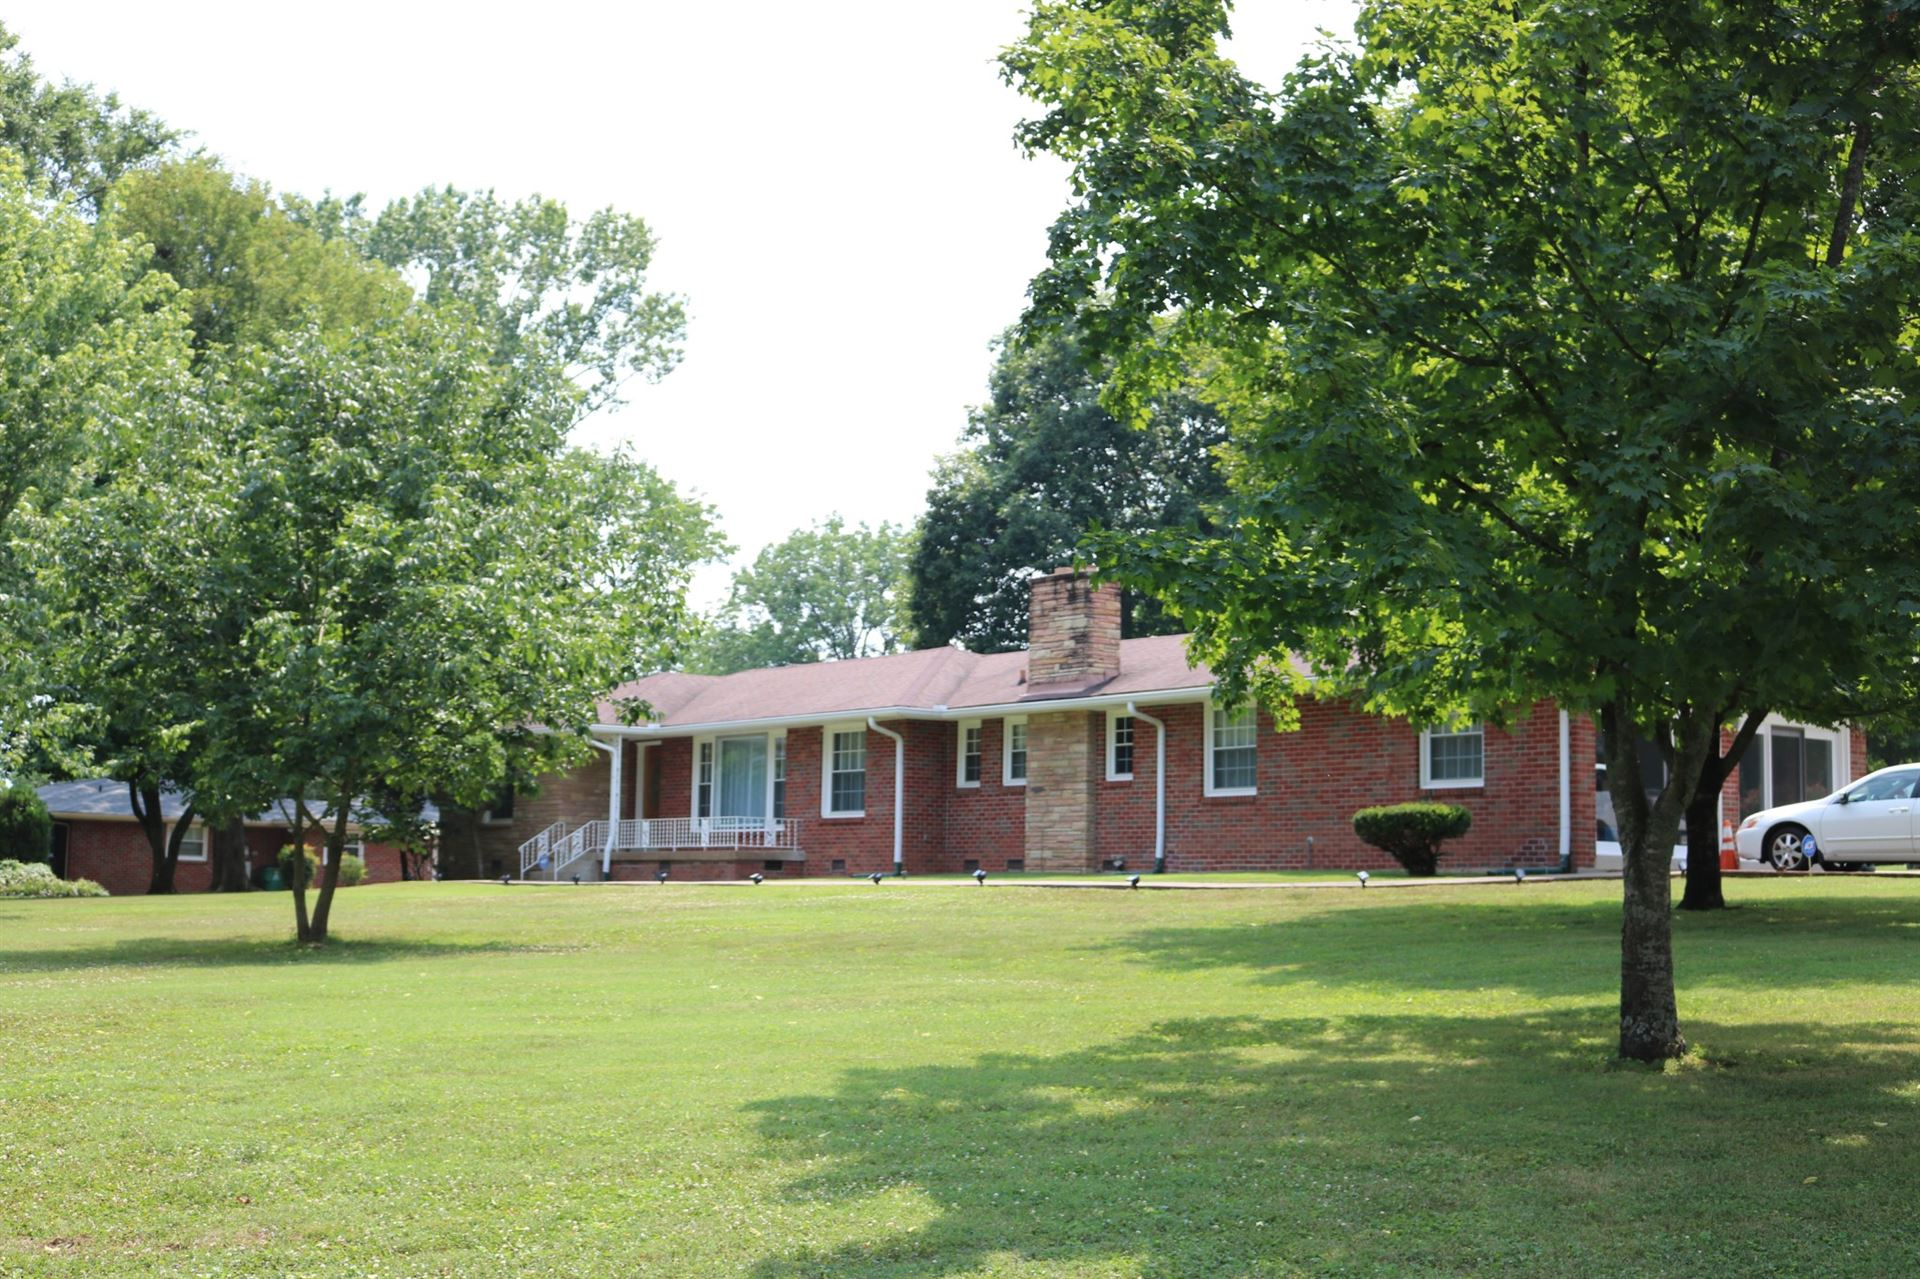 1013 Townley Dr, Madison, TN 37115 - MLS#: 2275670